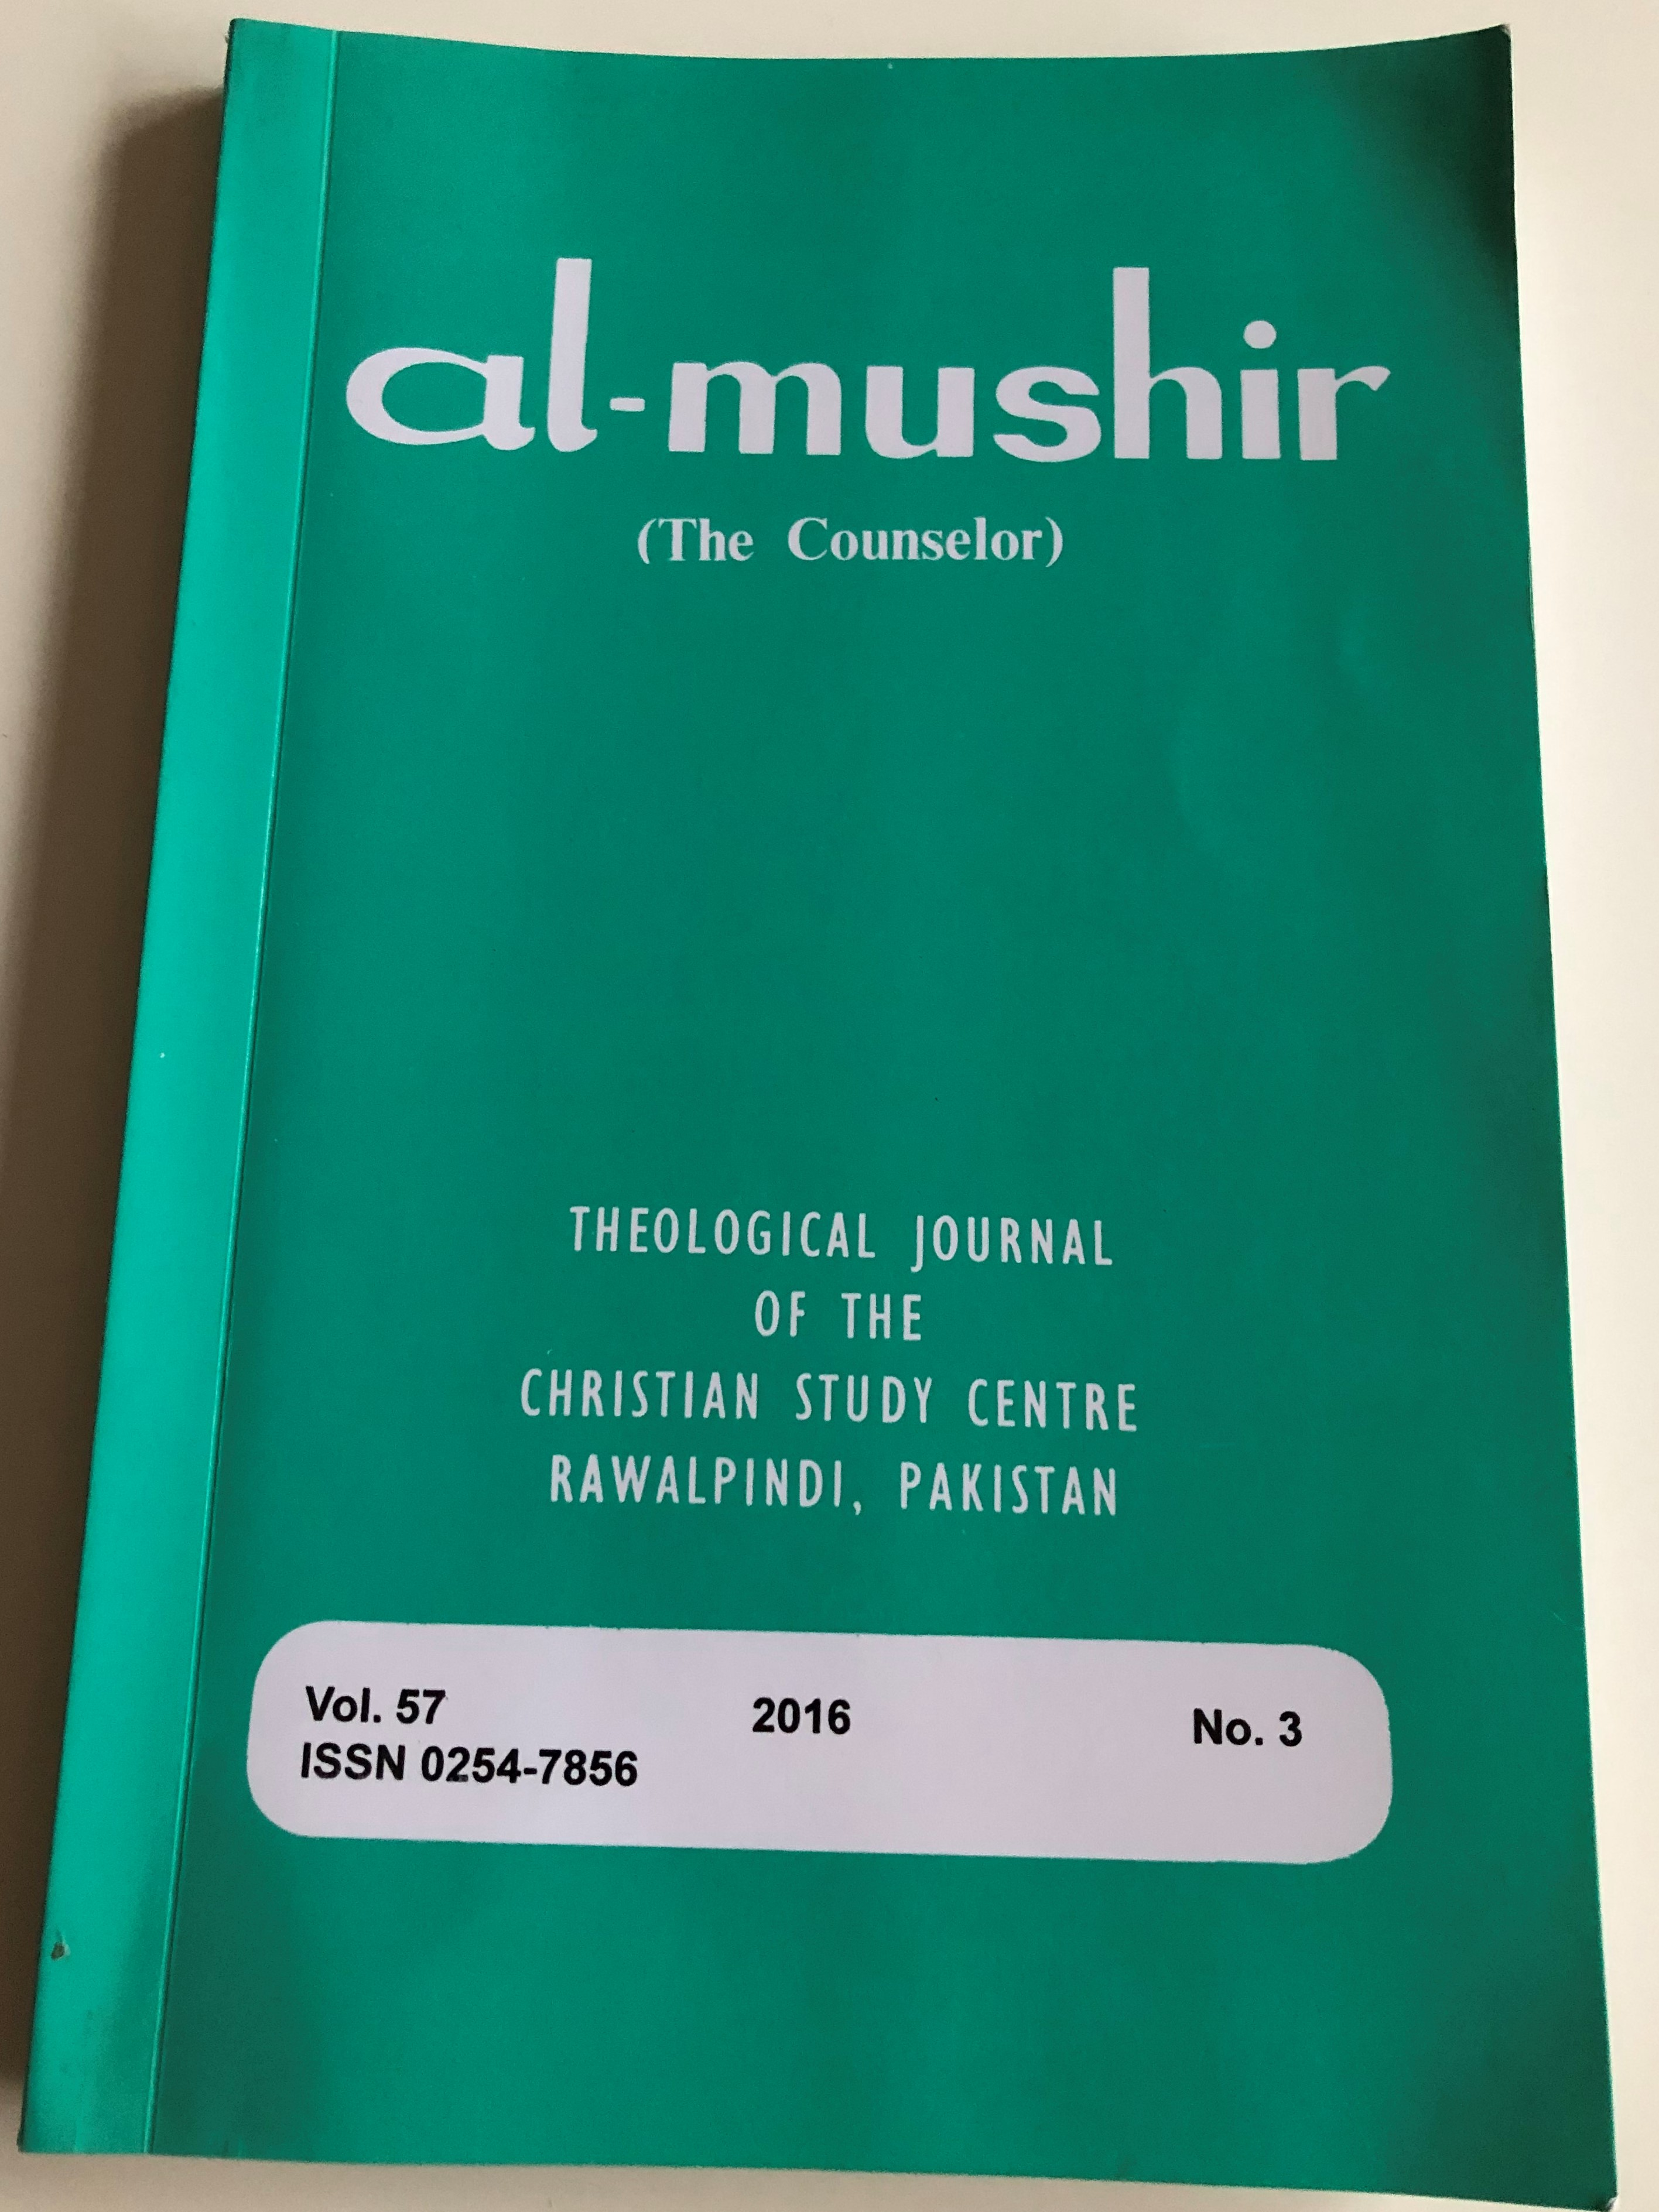 al-mushir-the-counselor-theological-journal-of-the-christian-study-centre-in-rawalpindi-1.jpg